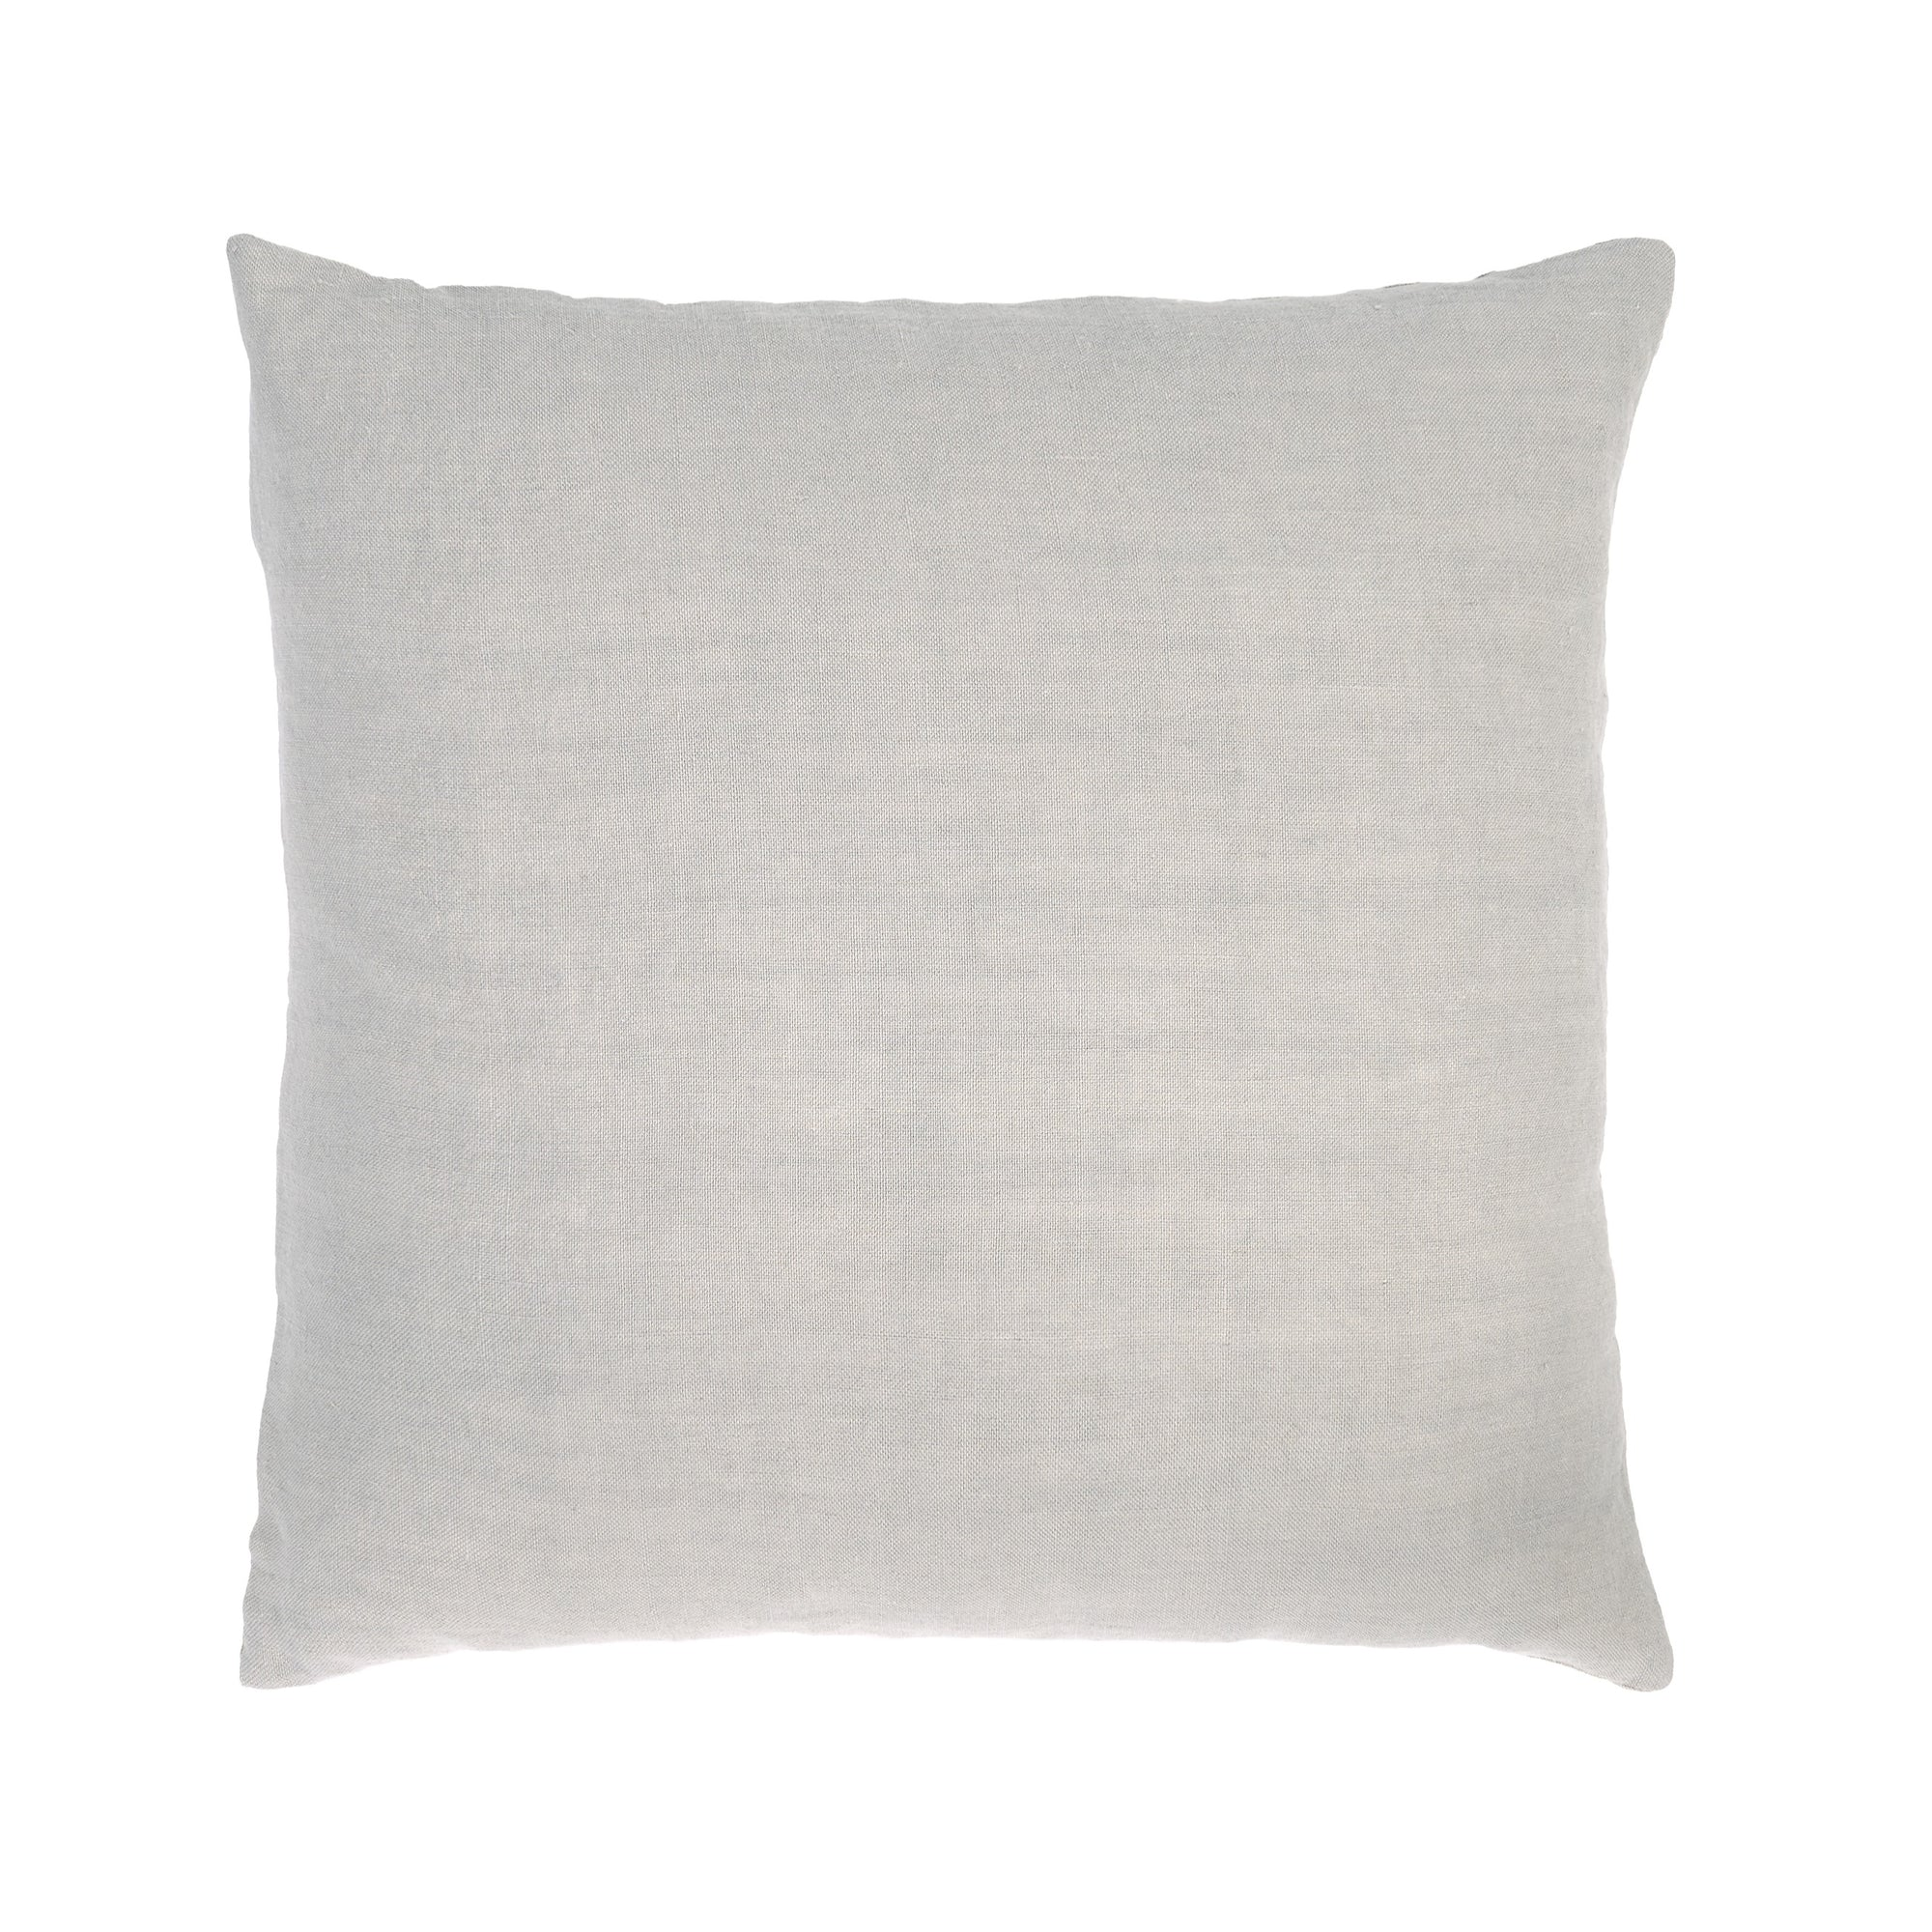 Oat Linen Sauvage cushion